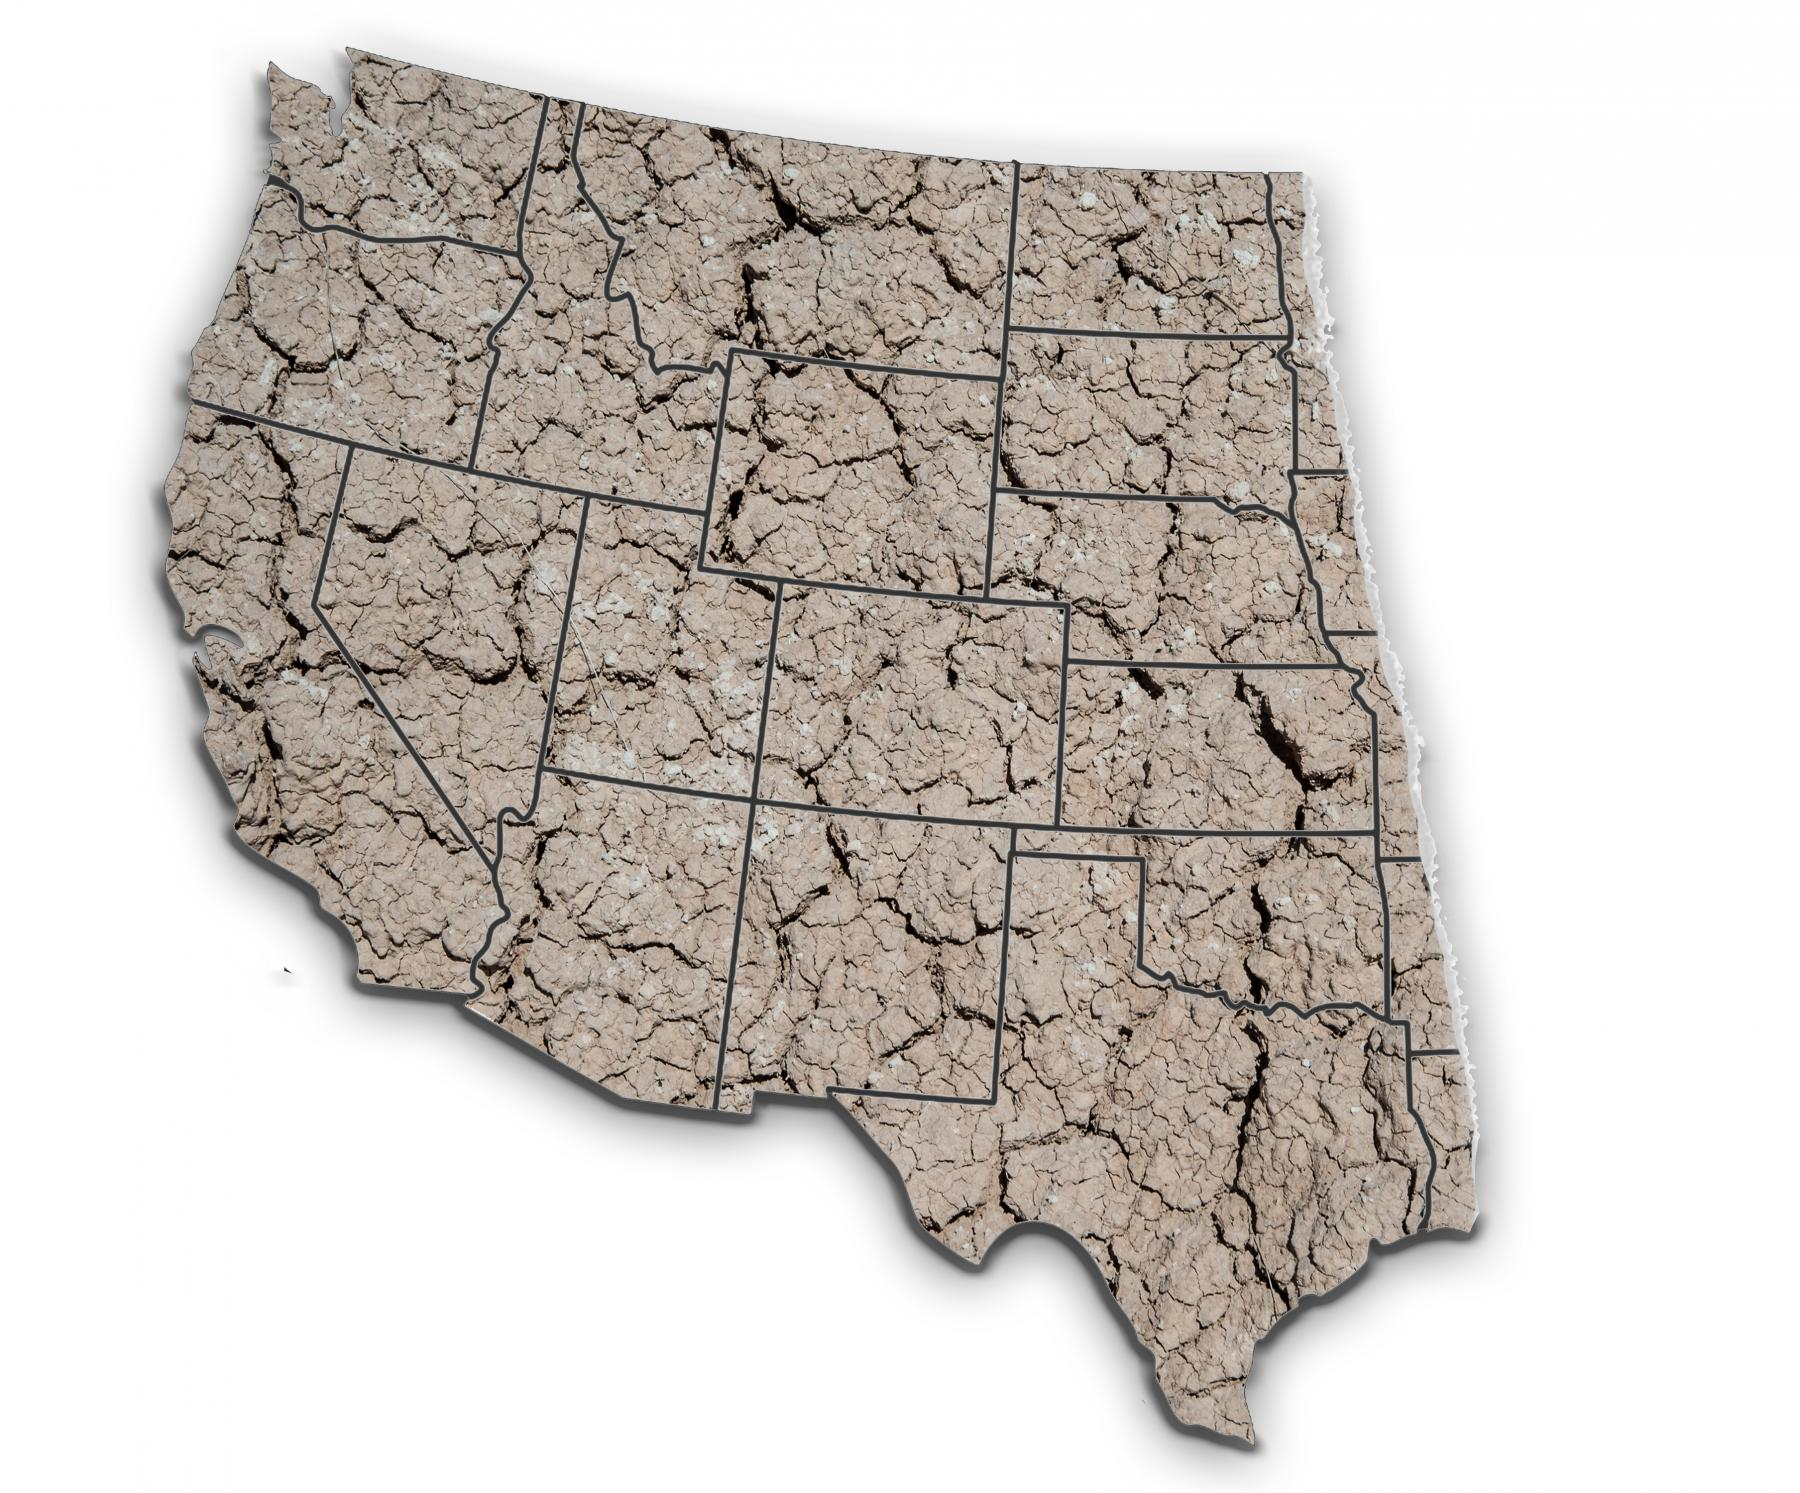 Crusted map of western states